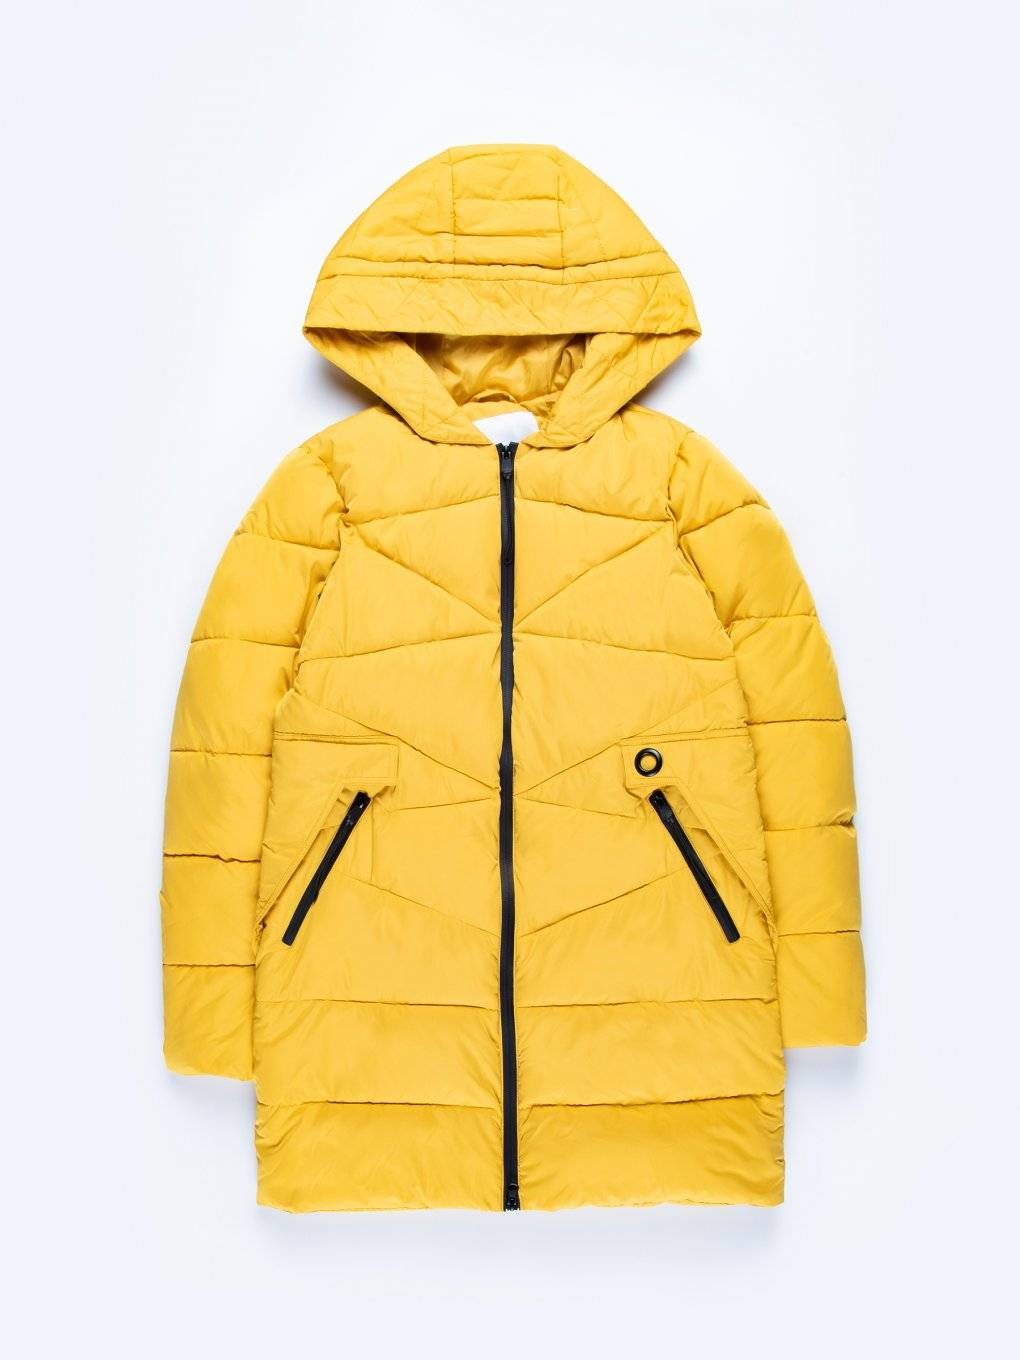 Longline quilted padded jacket with contrast zippers